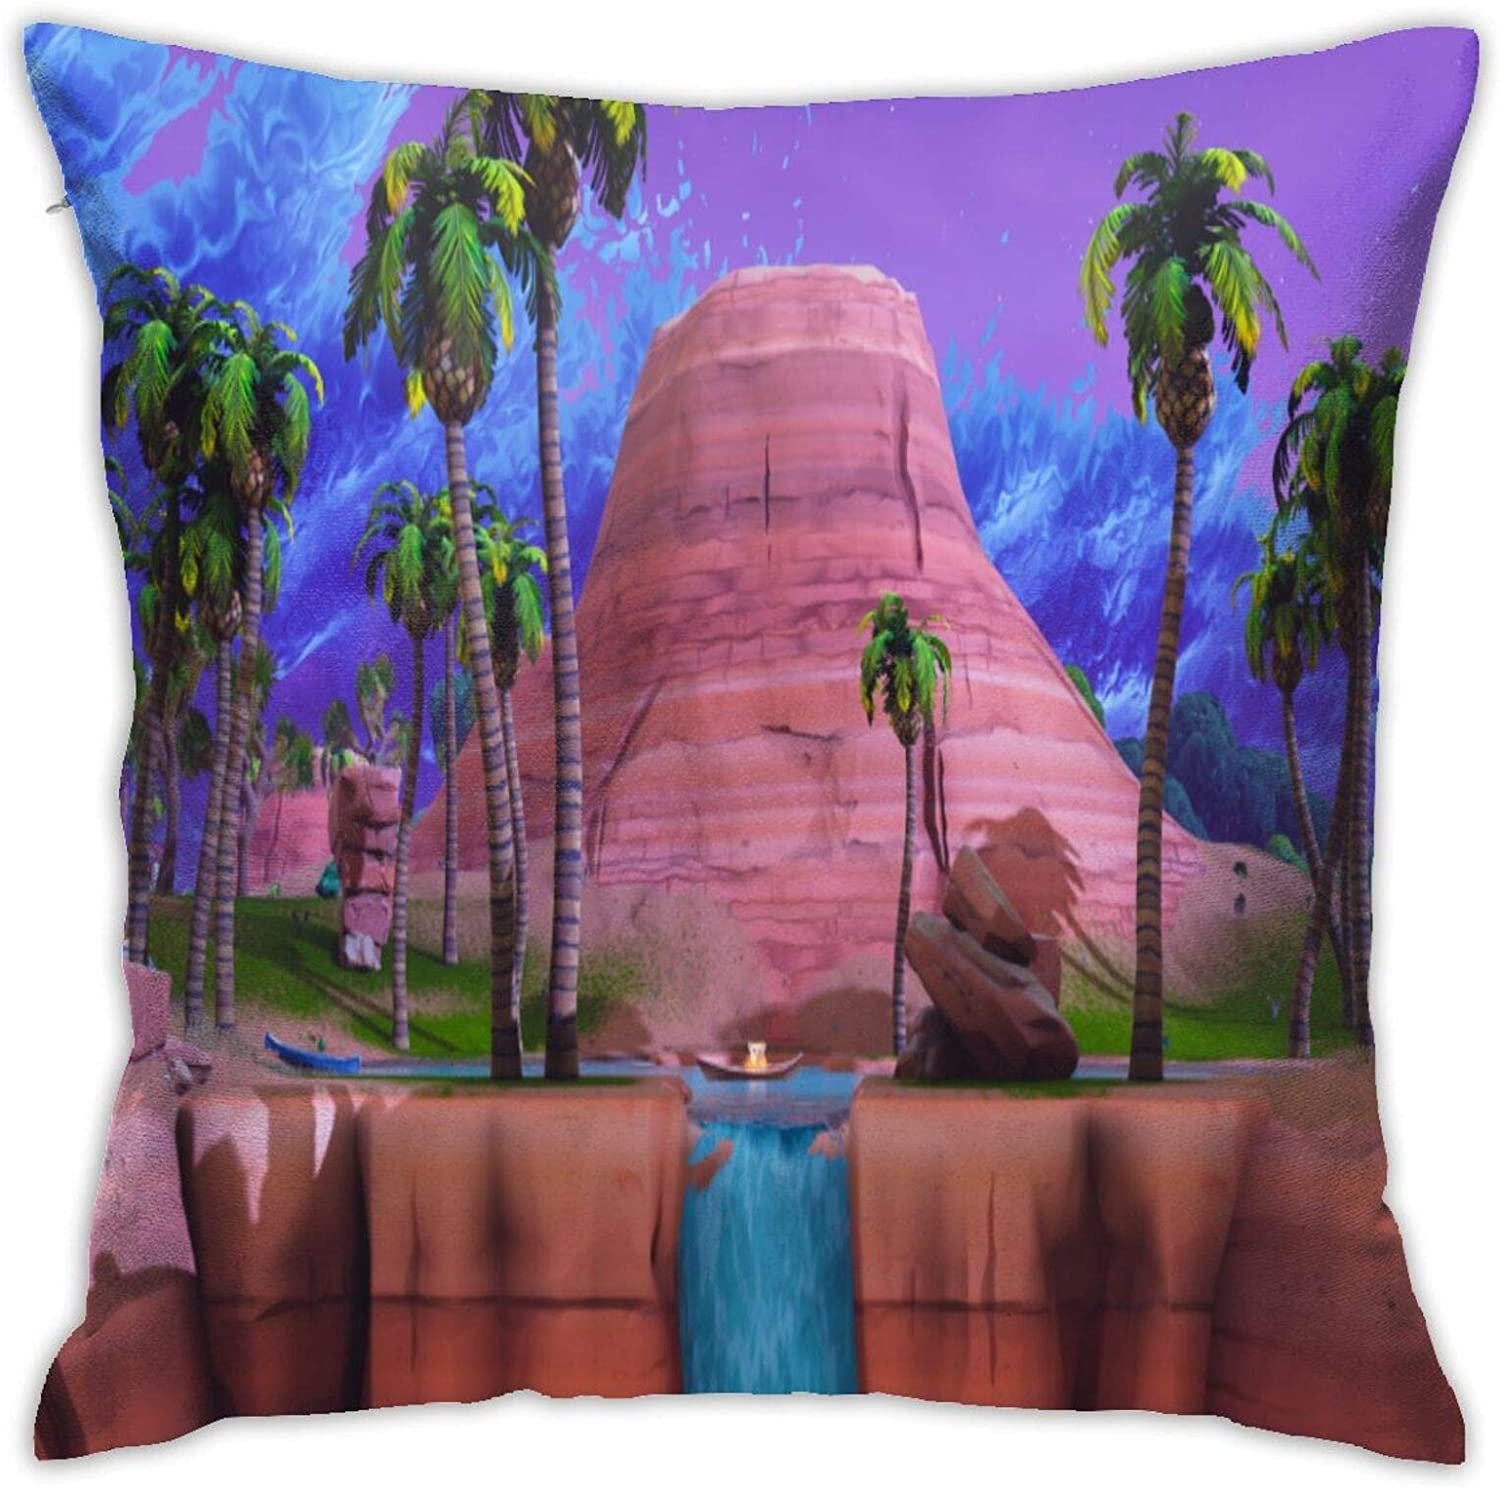 Flax Throw Pillow Cover 416 Battle Royale Shooting Game 18x18 Inches Anime Throw Pillow Covers Exquisite Pillo Wcase with Invisible Zipper Pillowcase Home Decor